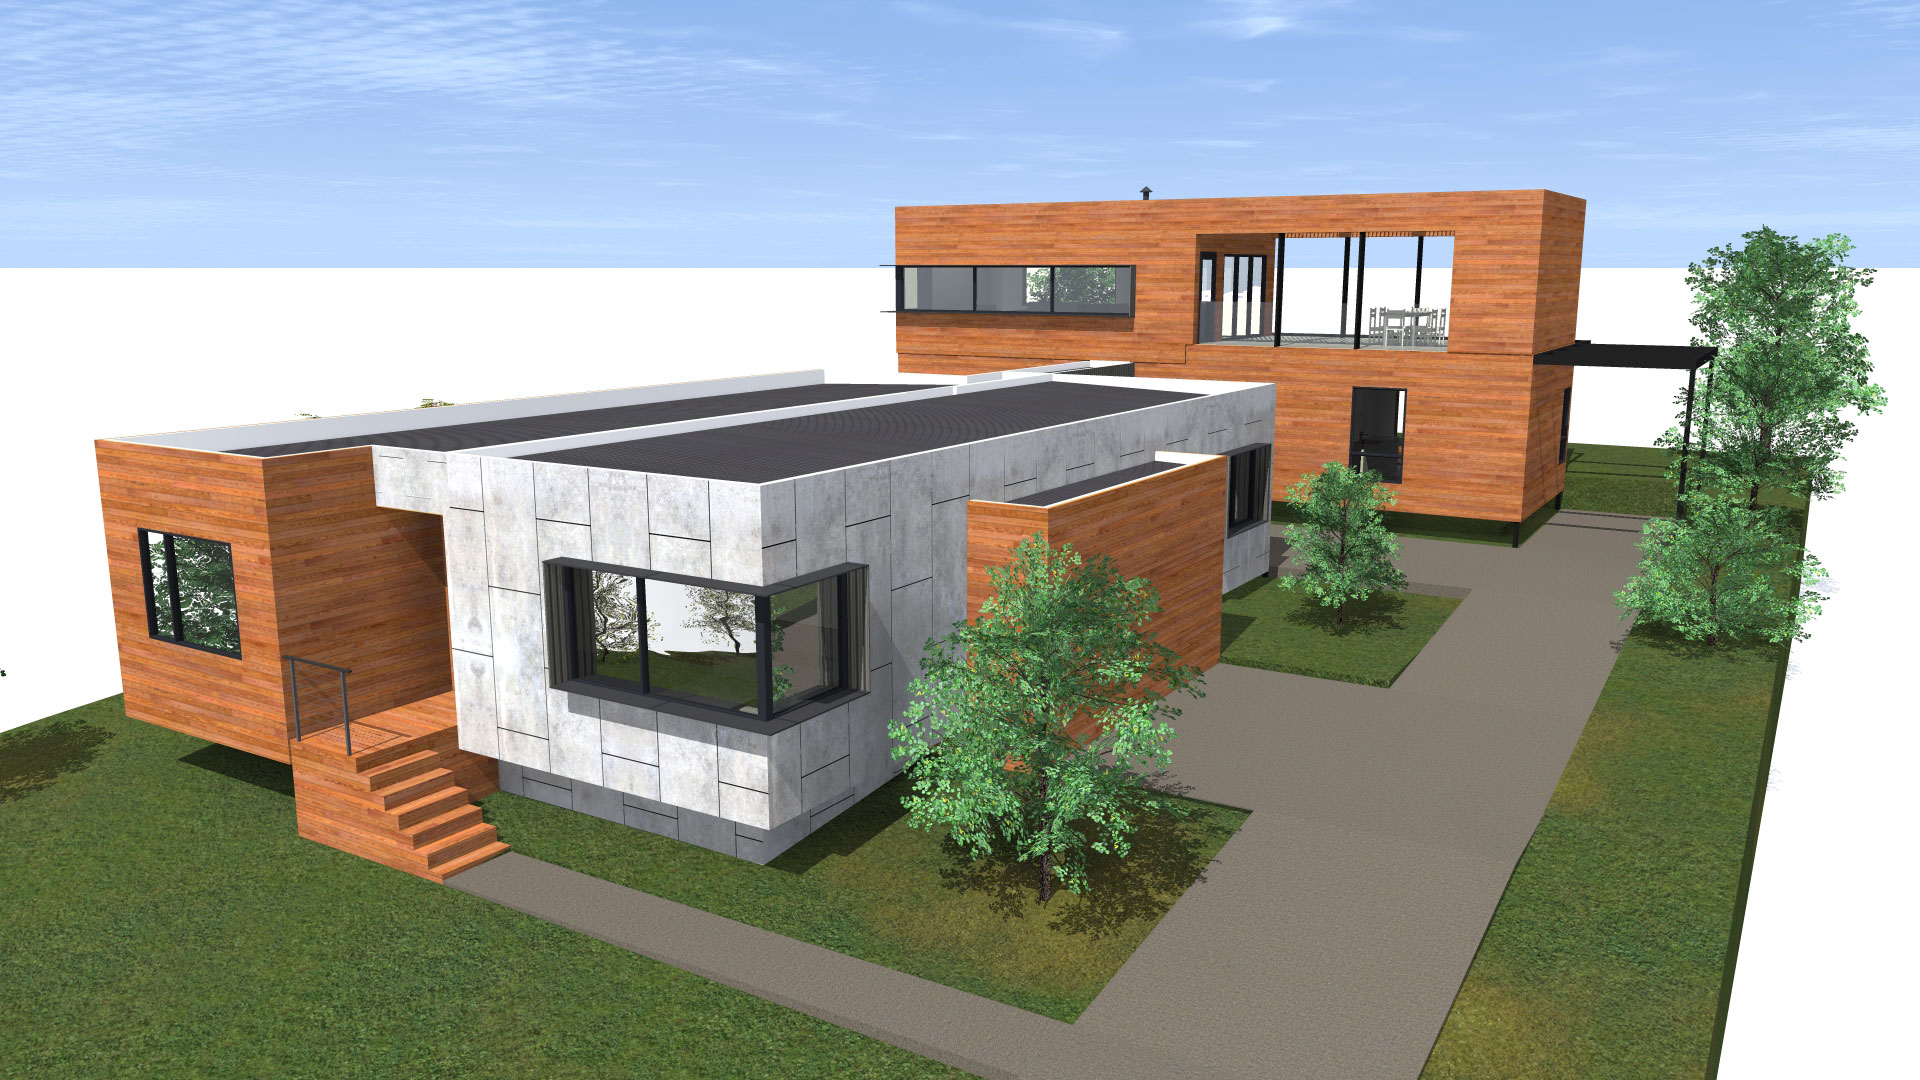 archiblox anglesea II house render side view